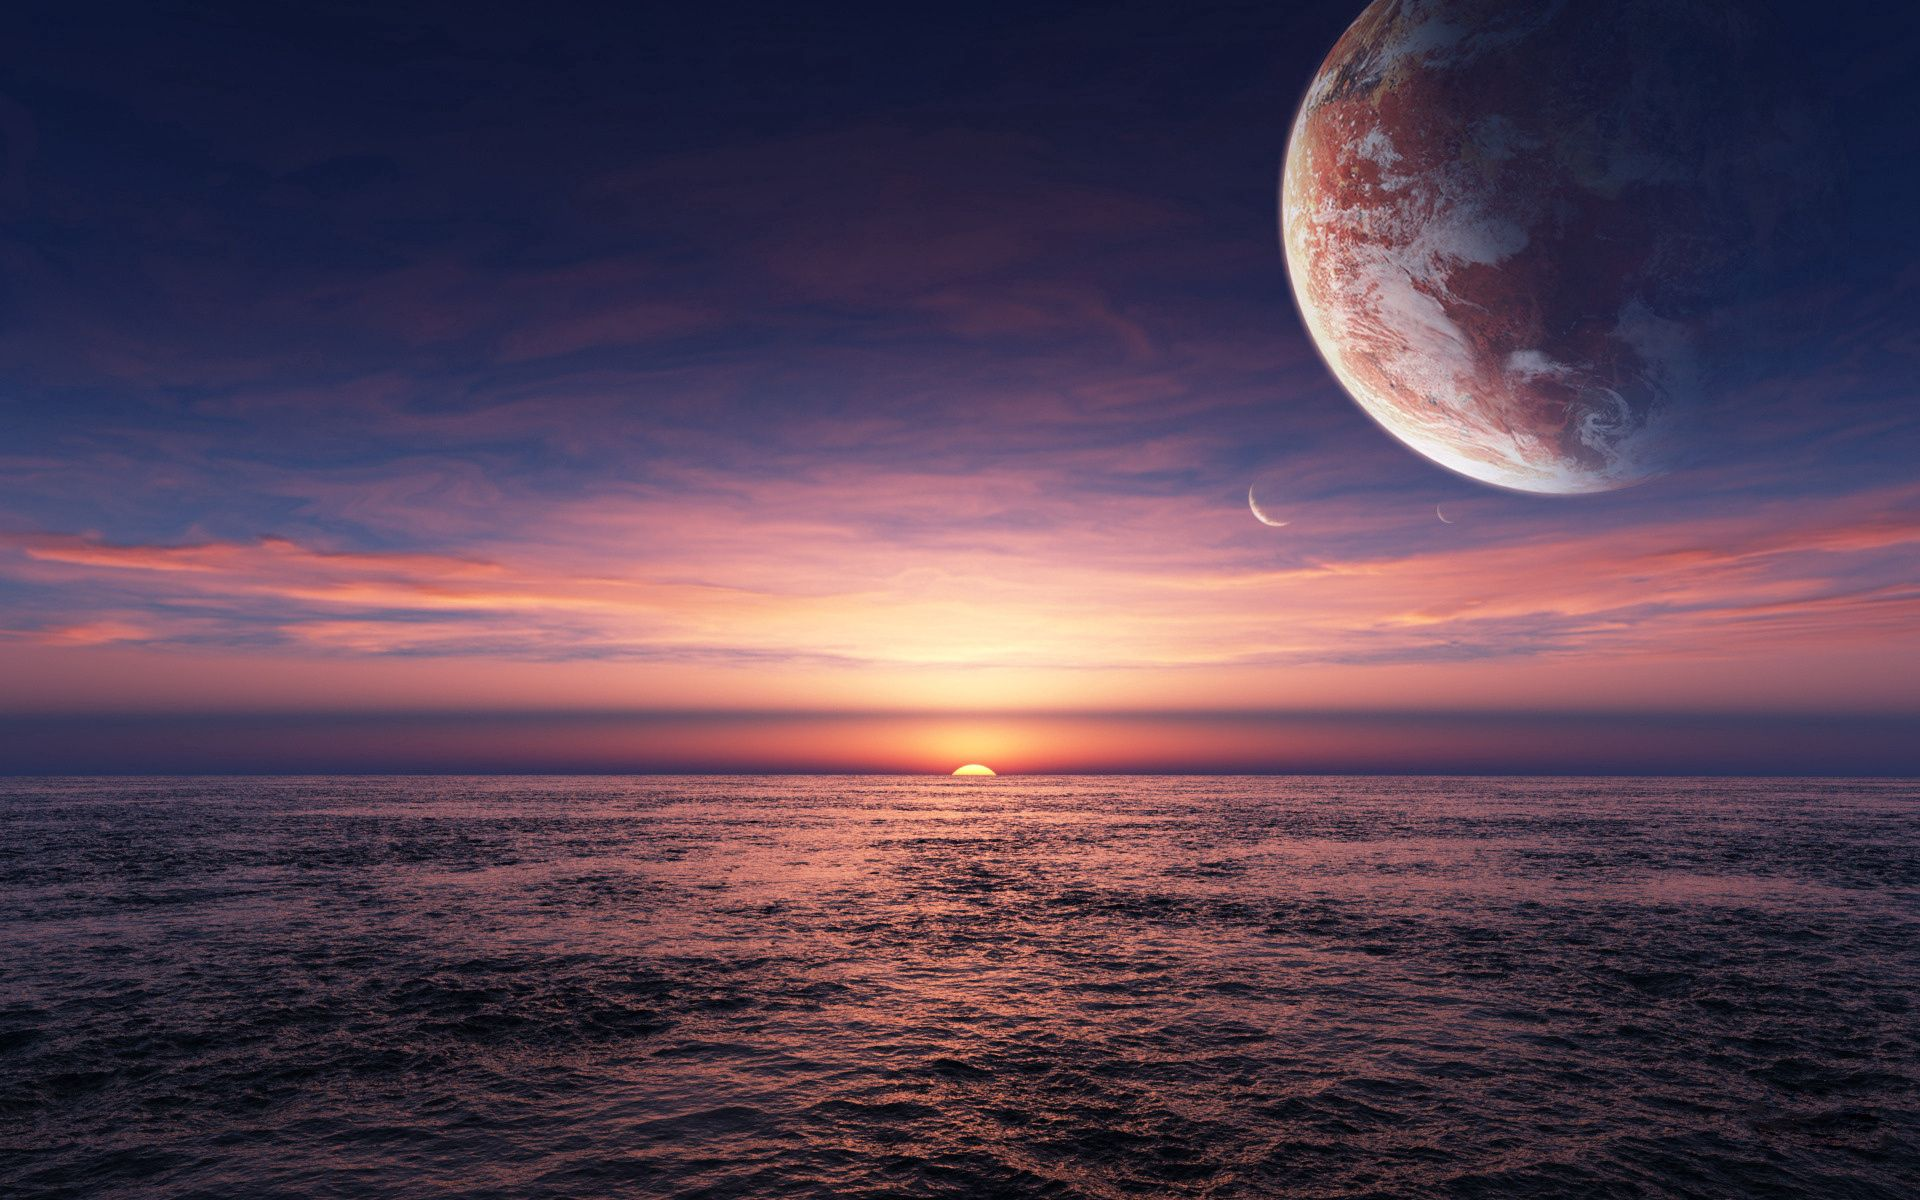 108210 download wallpaper Nature, Sunset, Sea, Sun, Planets screensavers and pictures for free